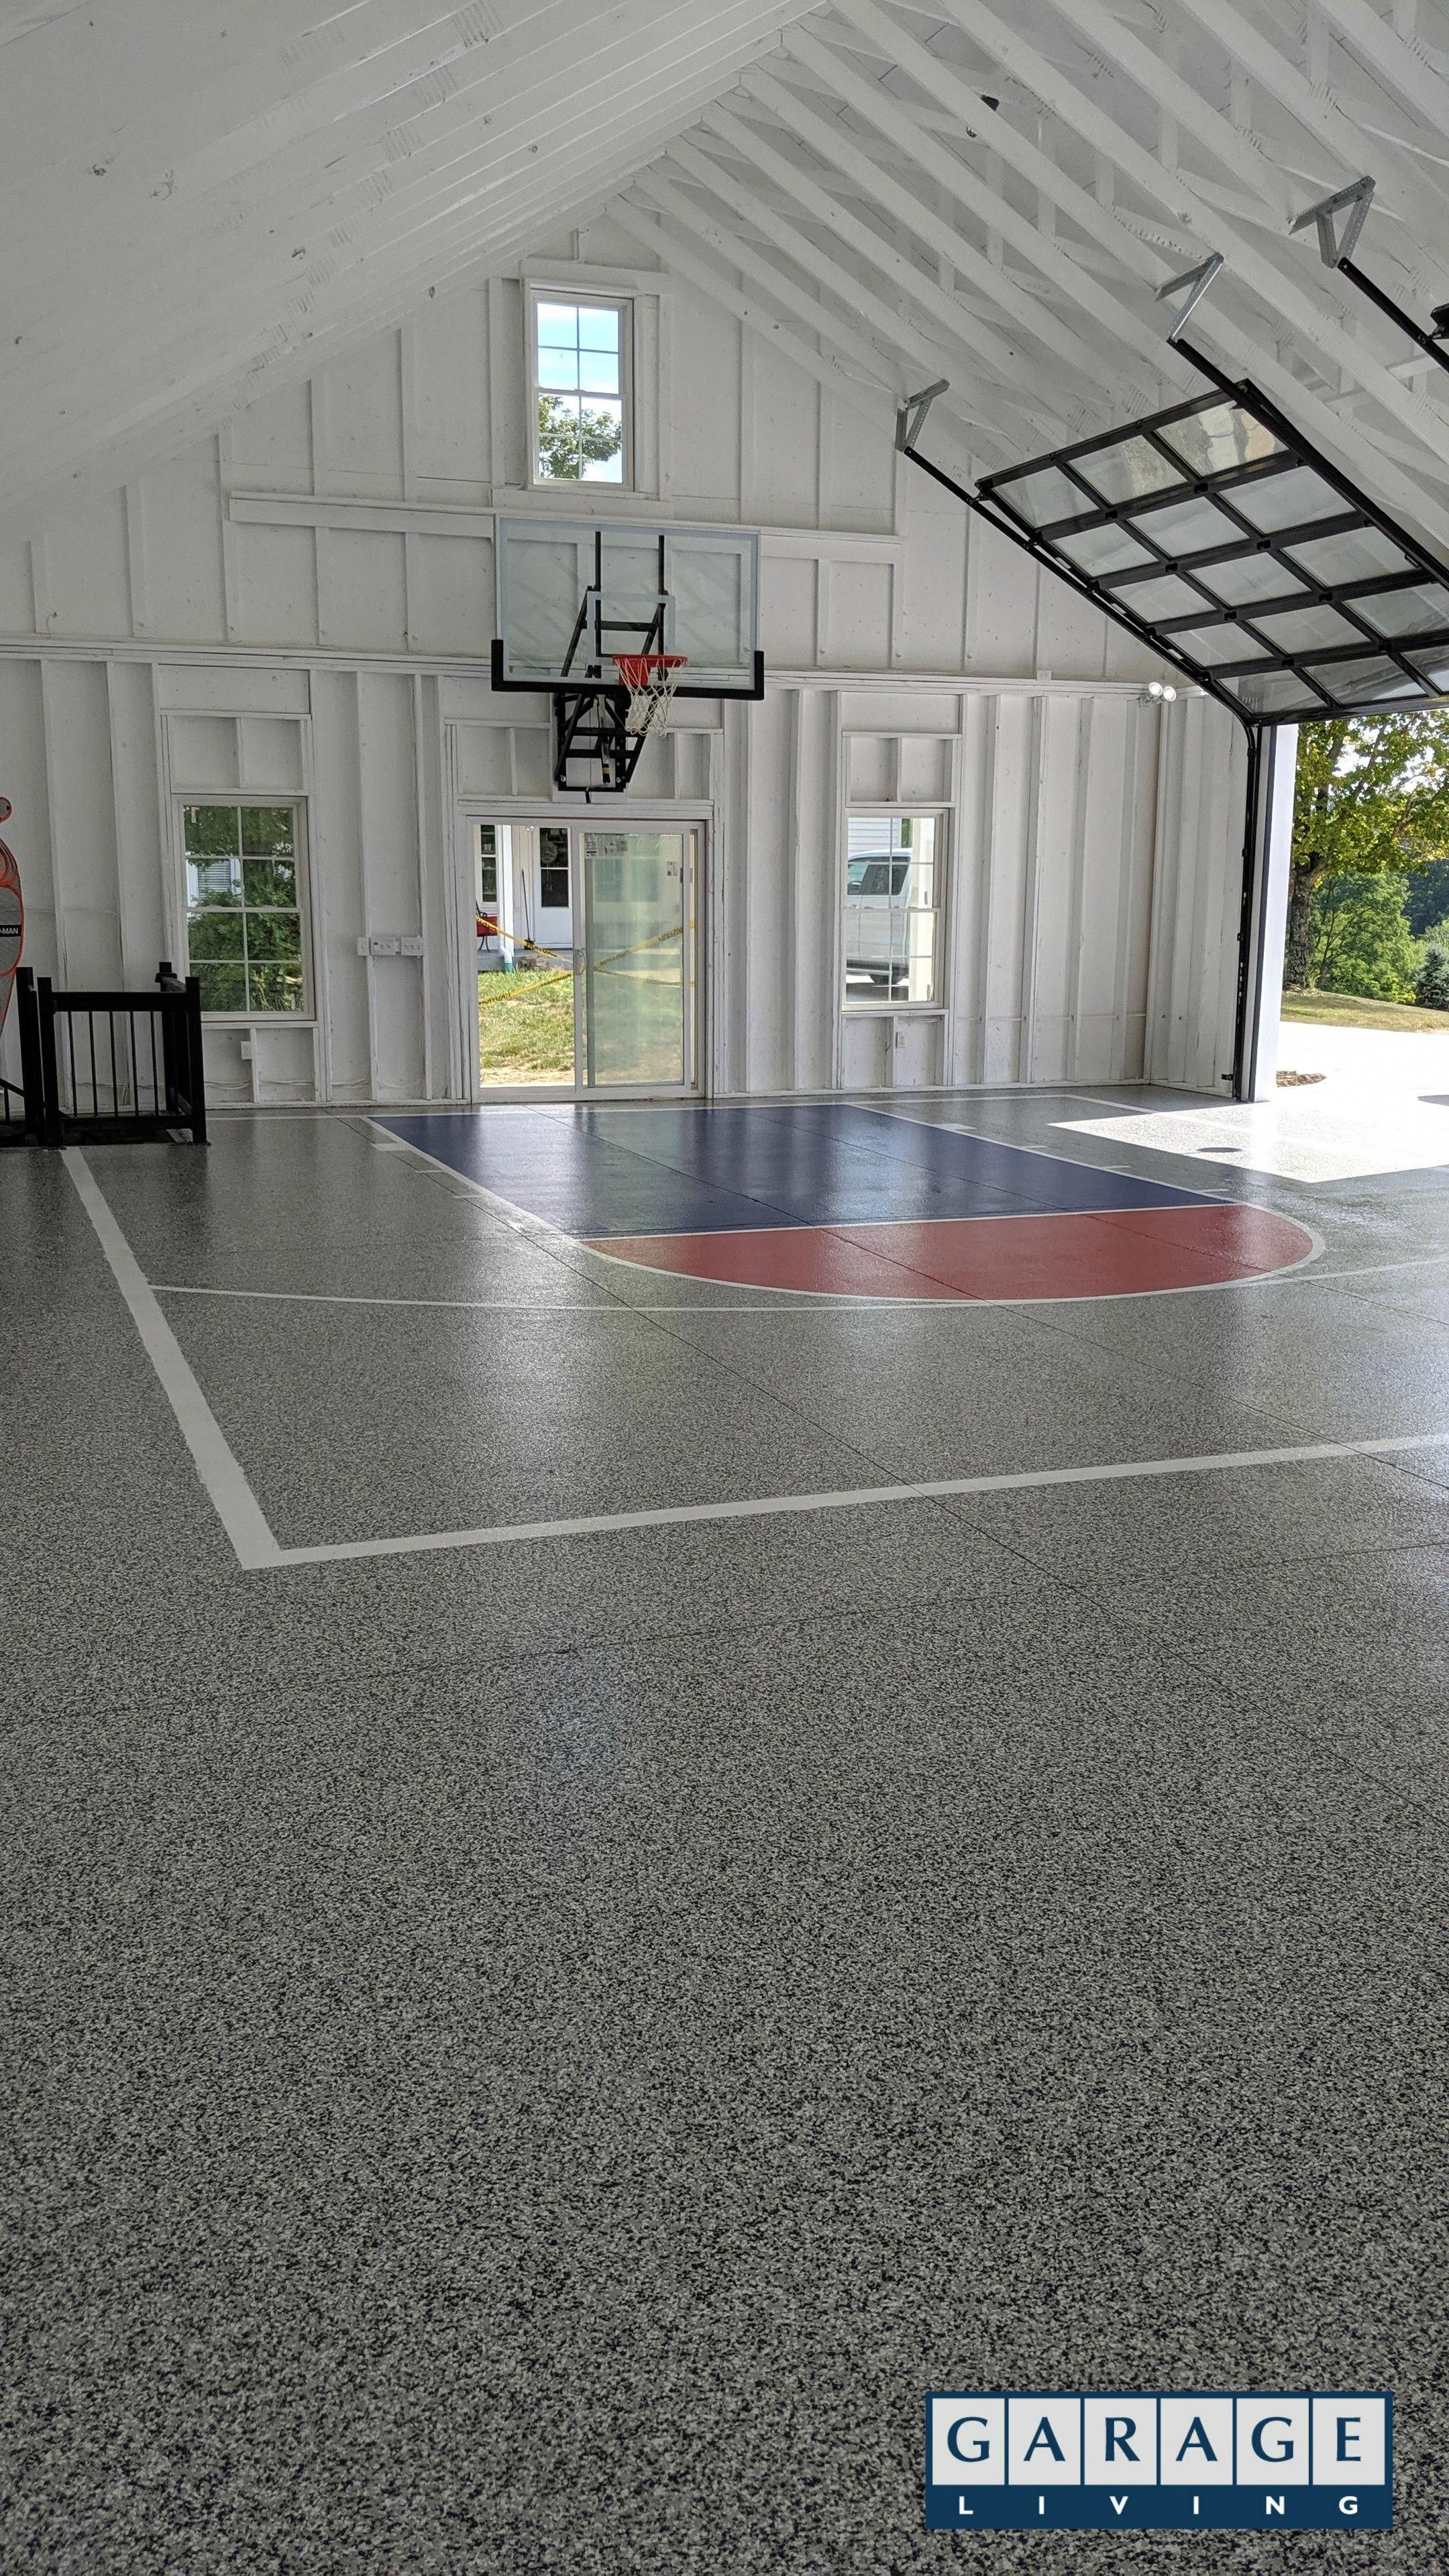 On The Downside The Chain Drive System Makes More Noise Than The Screw Drive System The Chain Home Basketball Court Indoor Basketball Court Indoor Basketball